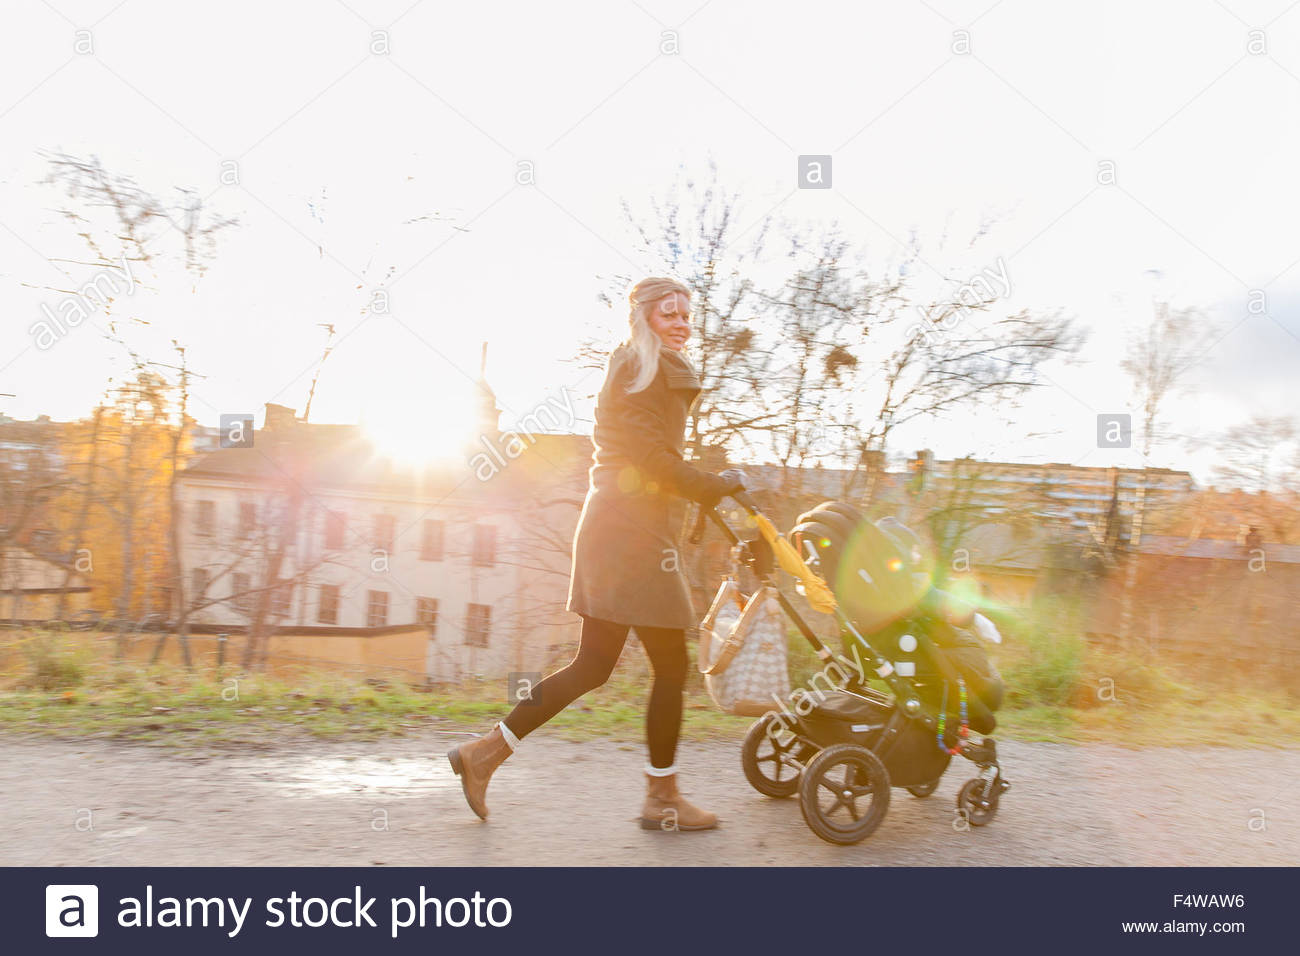 Sweden, Stockholm, Sodermalm, Young mother walking with son (6-11 months) sitting in stroller - Stock Image